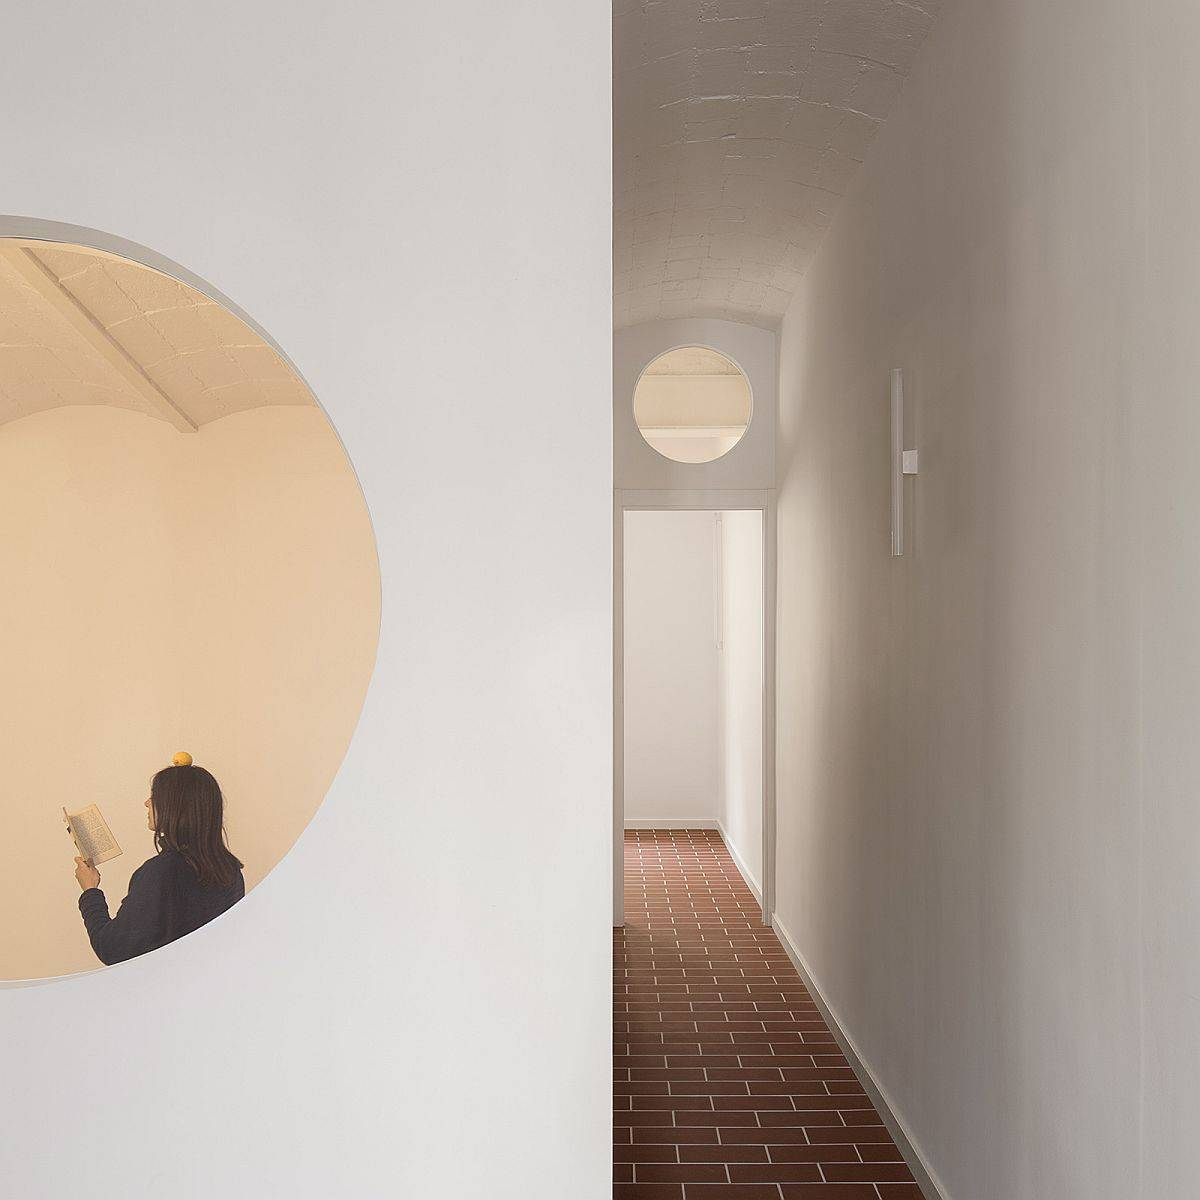 Innovative-use-of-circular-windows-inside-the-Barcelona-apartment-for-flow-of-natura-light-13920